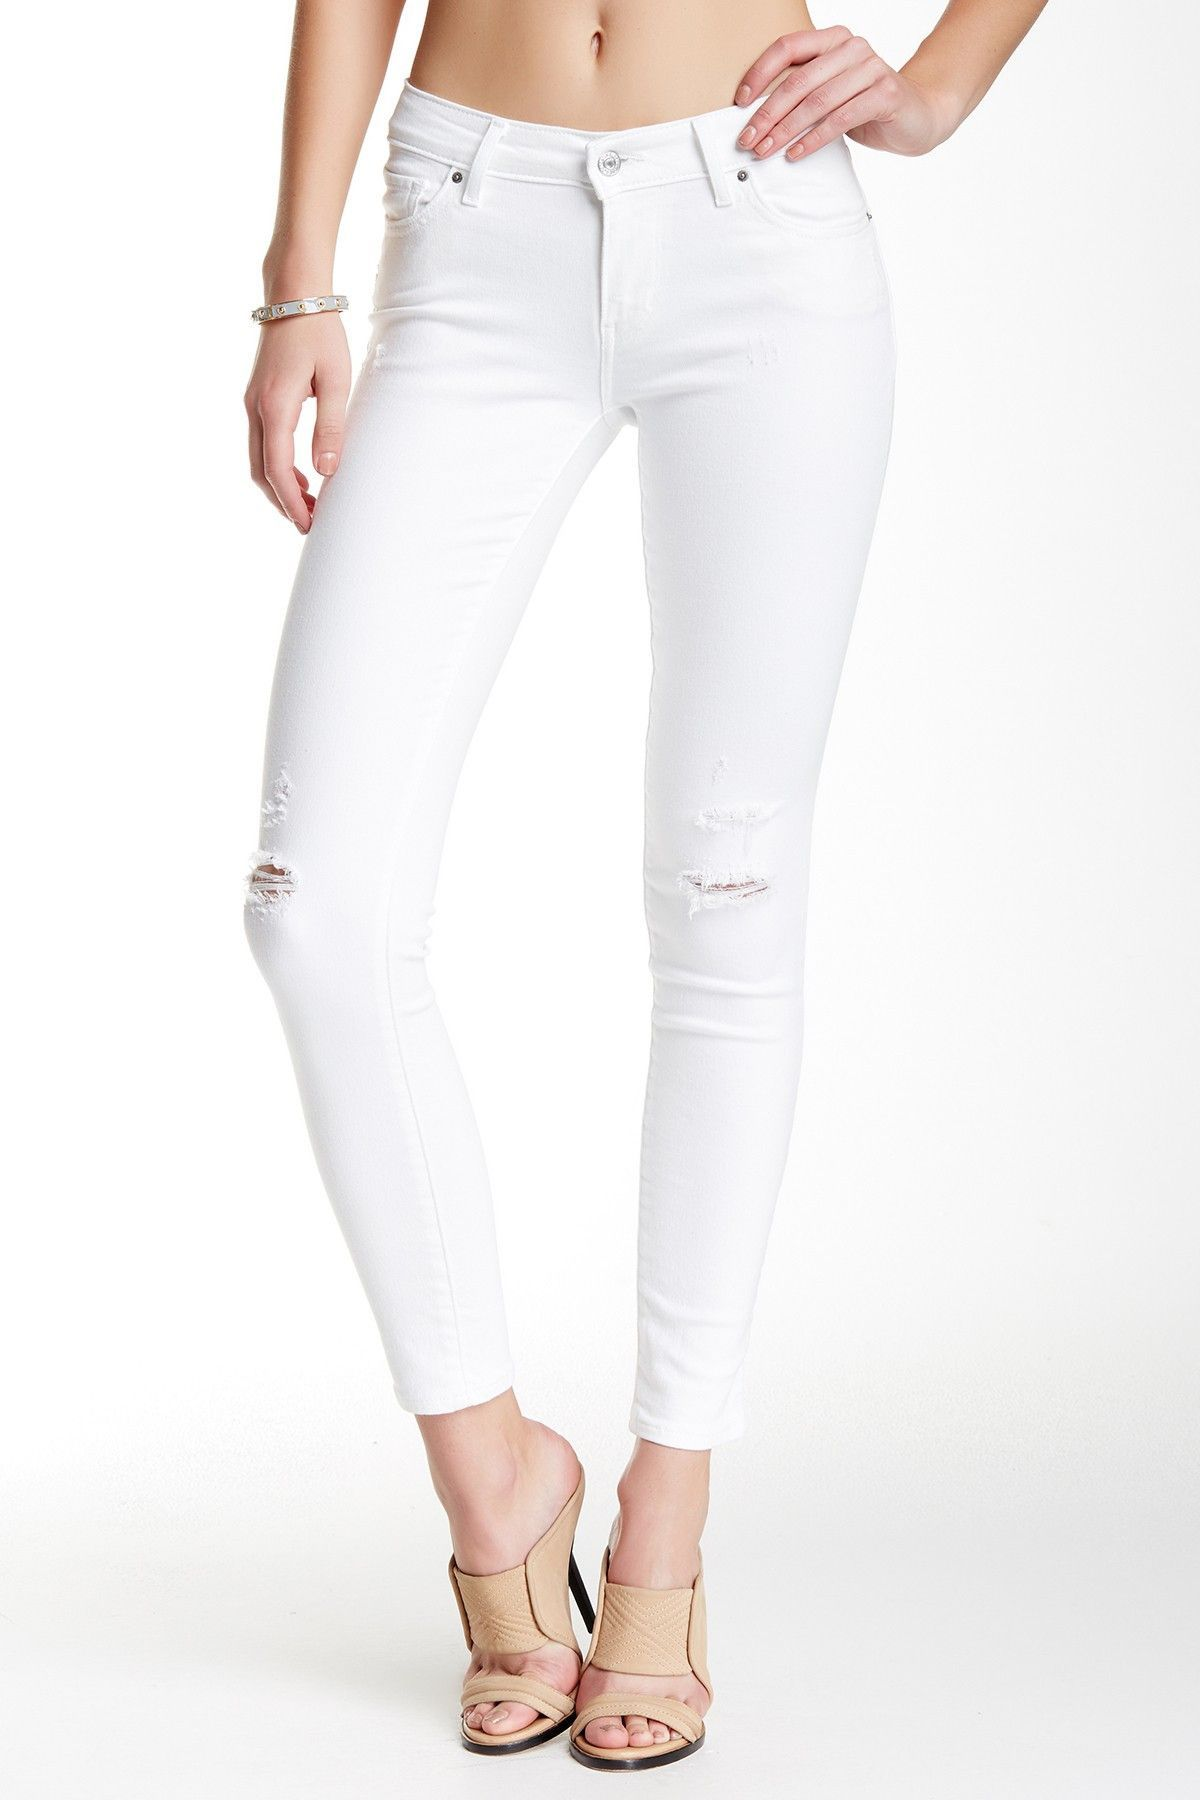 Levi's 711 0076 White Ripped Knee Skinny Jeans Size 10 30 X 32 ...